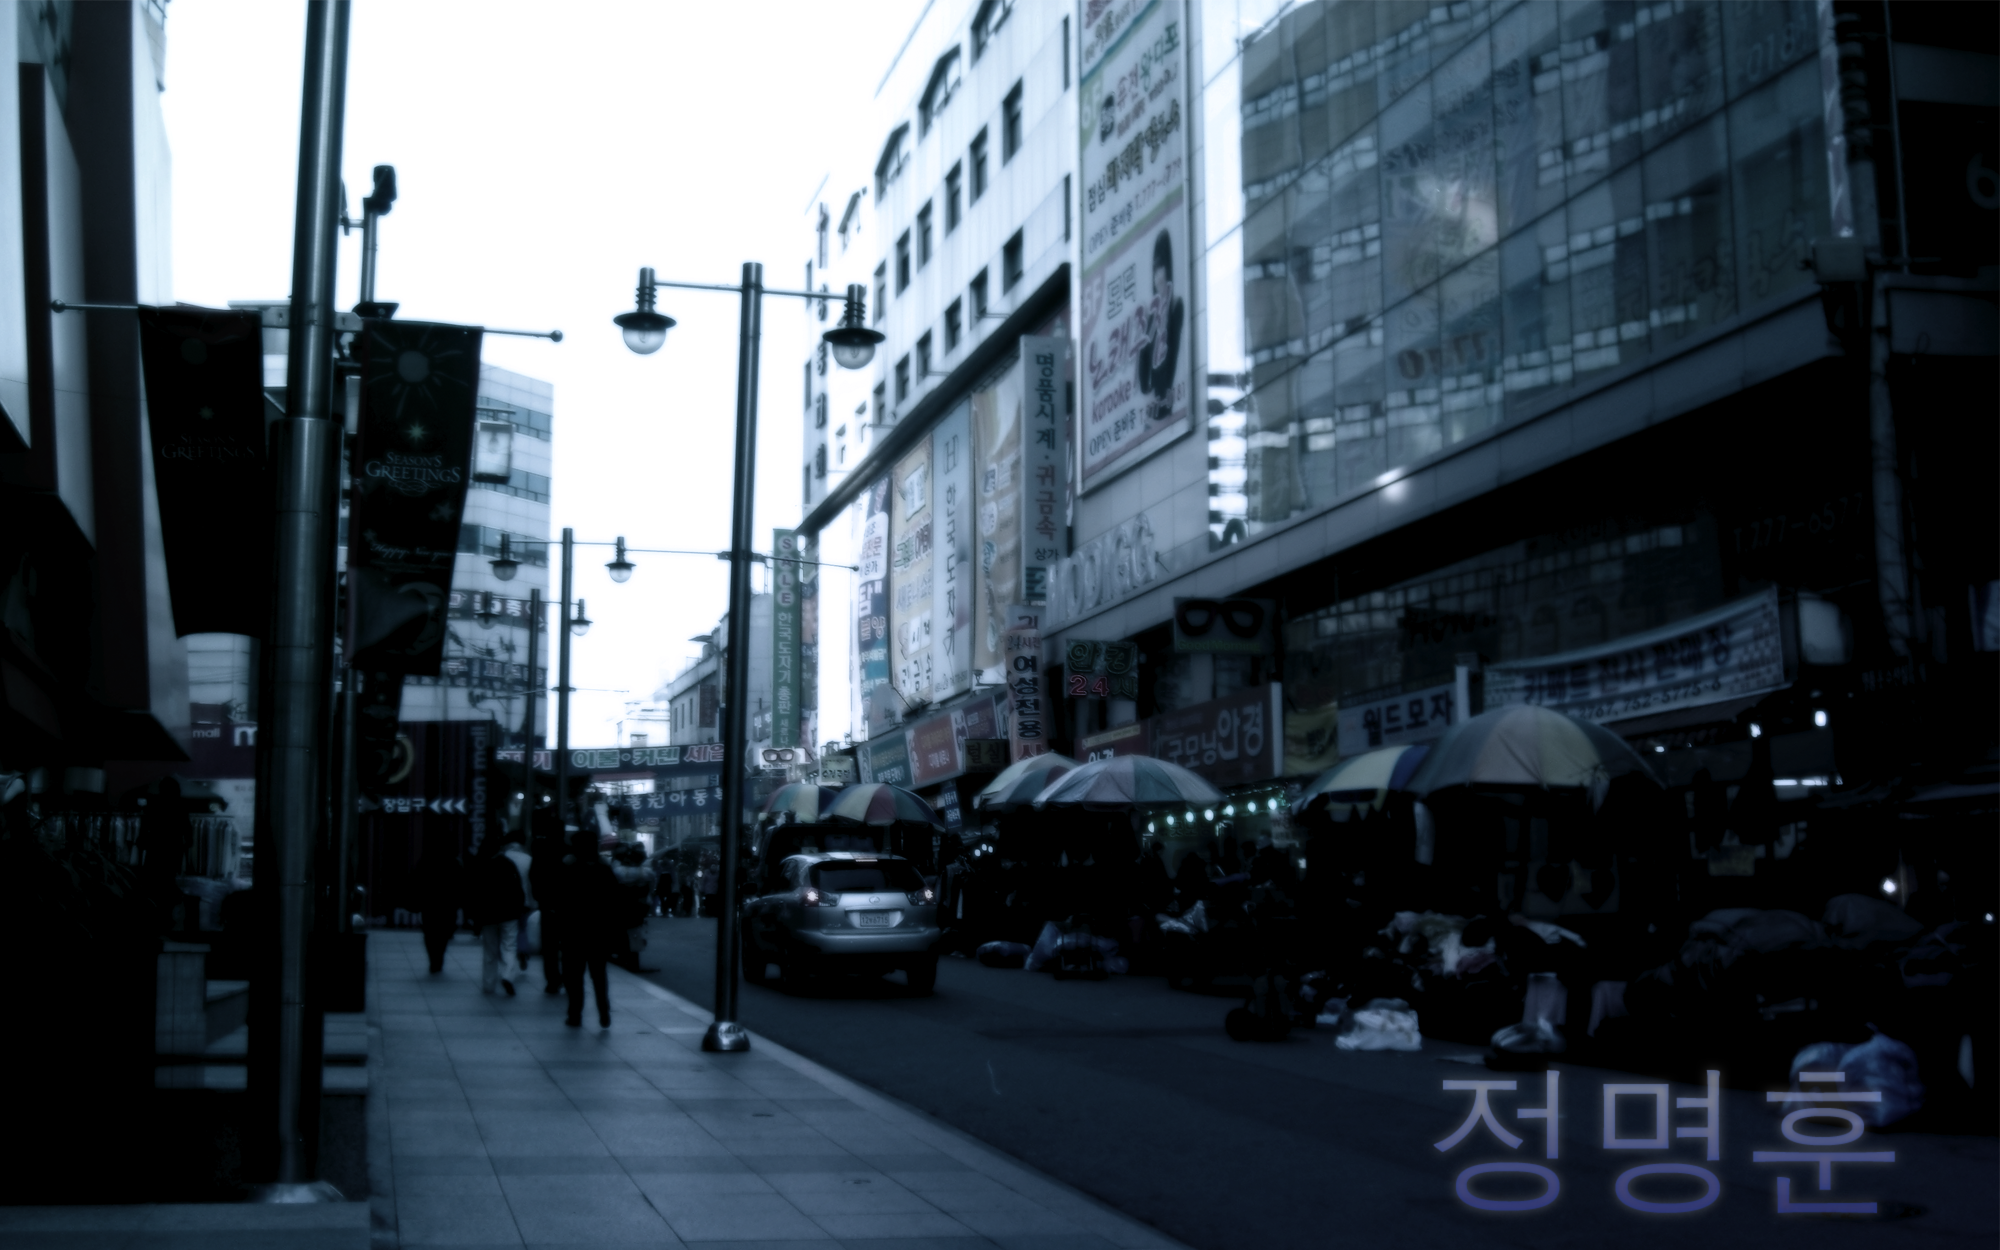 Seoul Wallpaper Tumblr